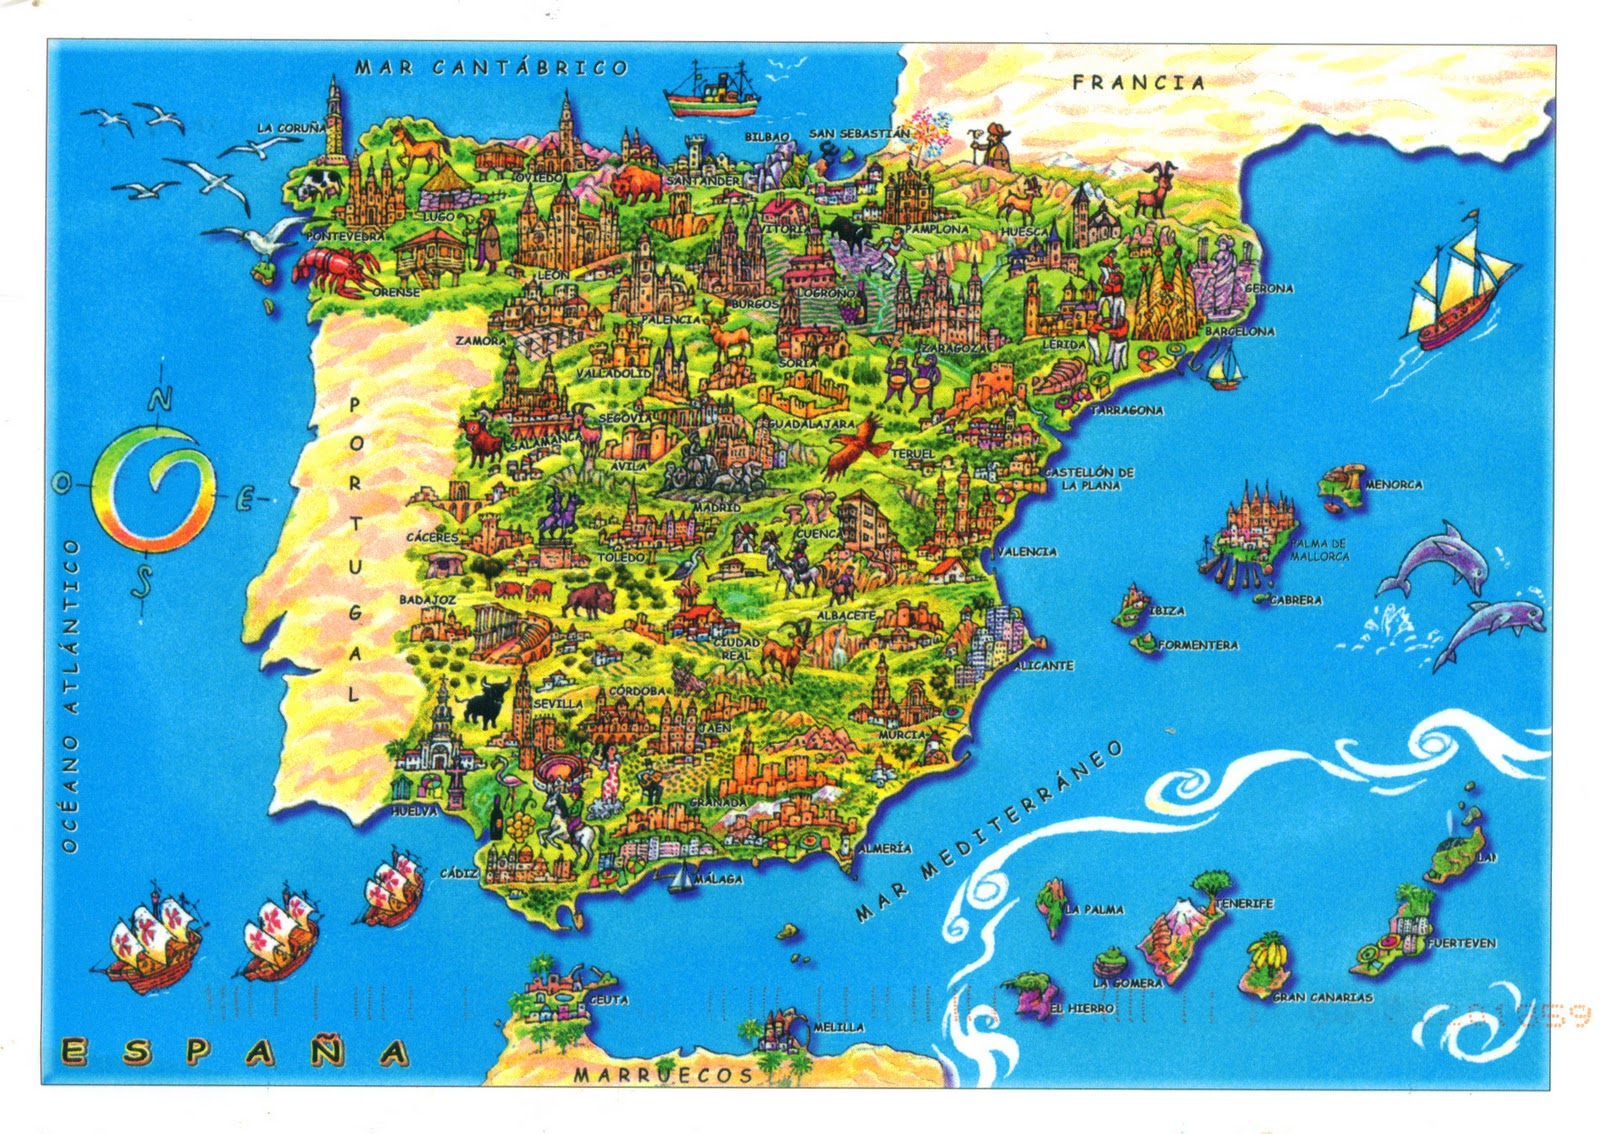 Spanien Touristische Karte – Spain Tourist Attractions Map